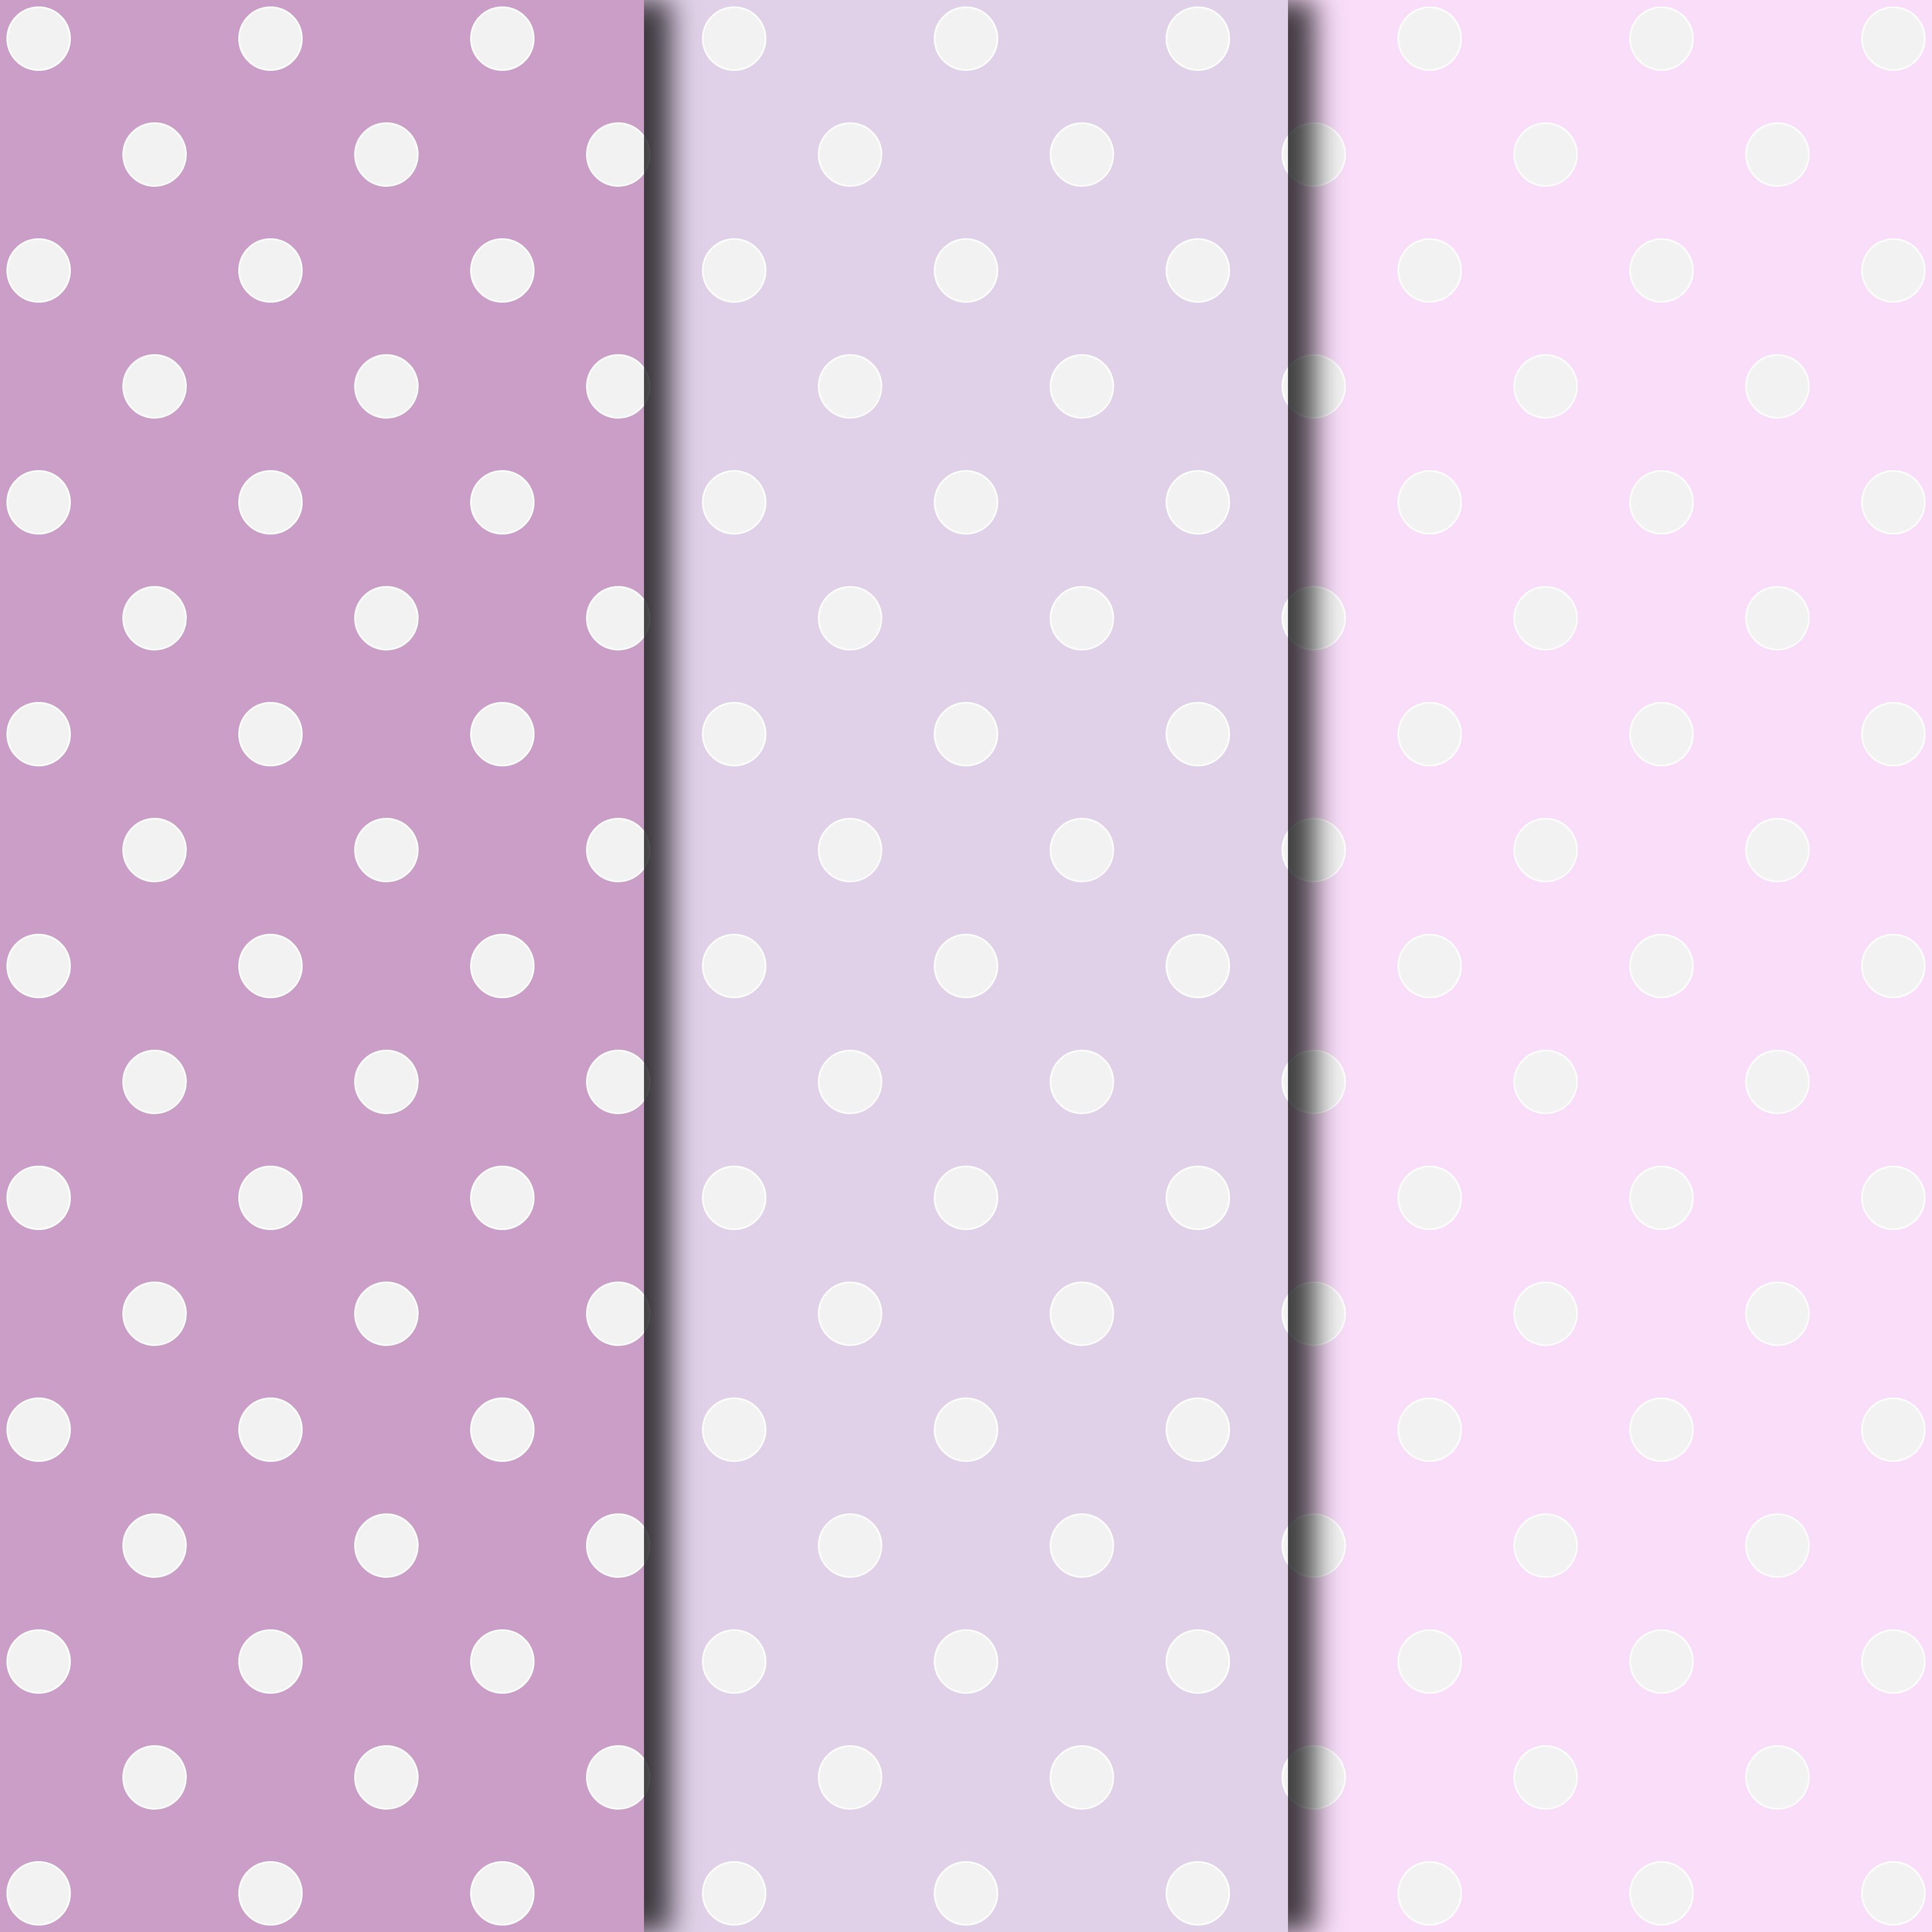 Download Free Pastel Polka Dots Digital Paper Collection Graphic By Frazella for Cricut Explore, Silhouette and other cutting machines.